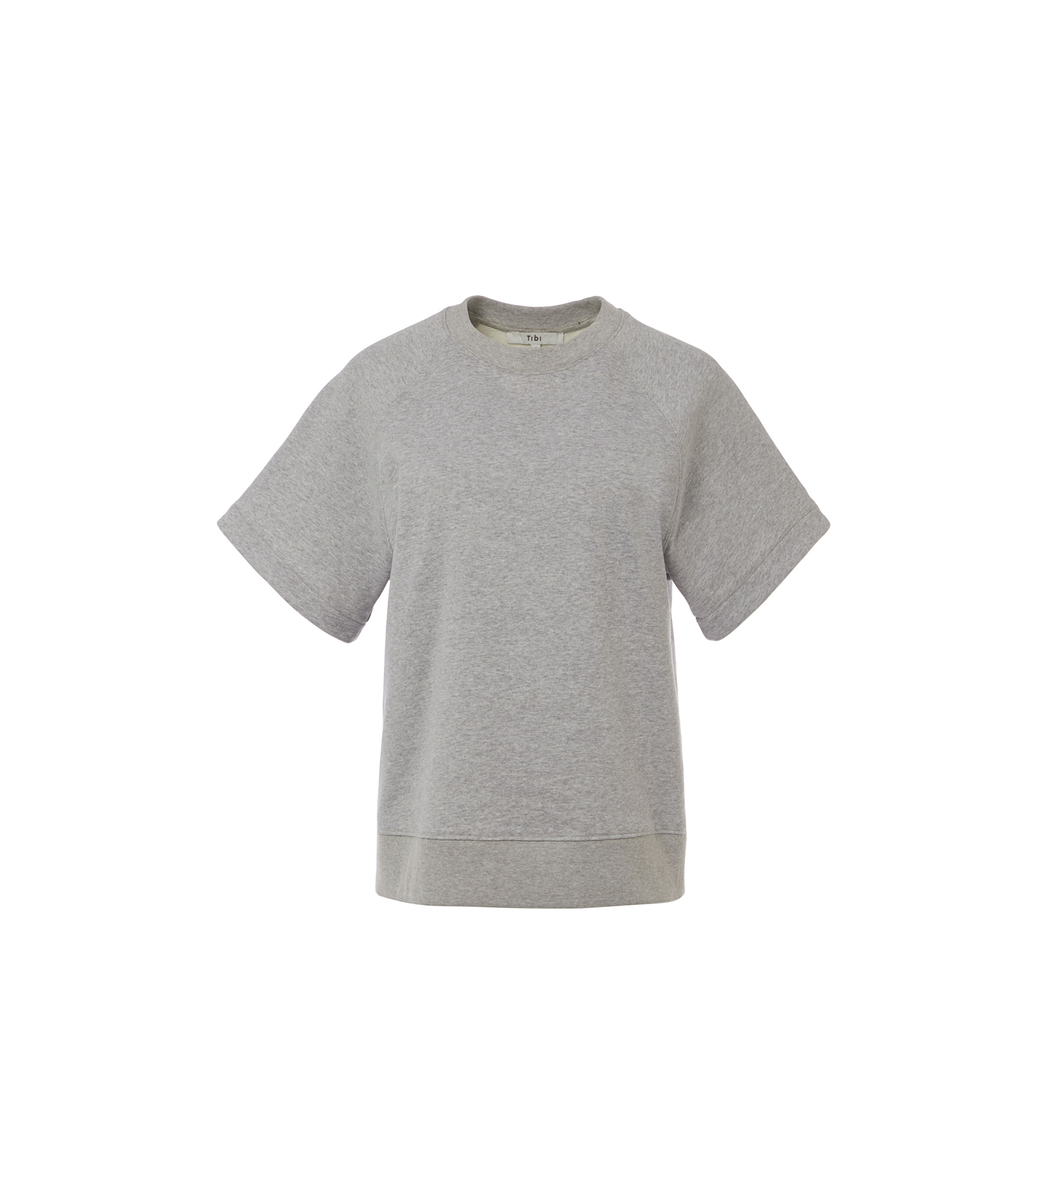 Heather Grey Easy Sweatshirt